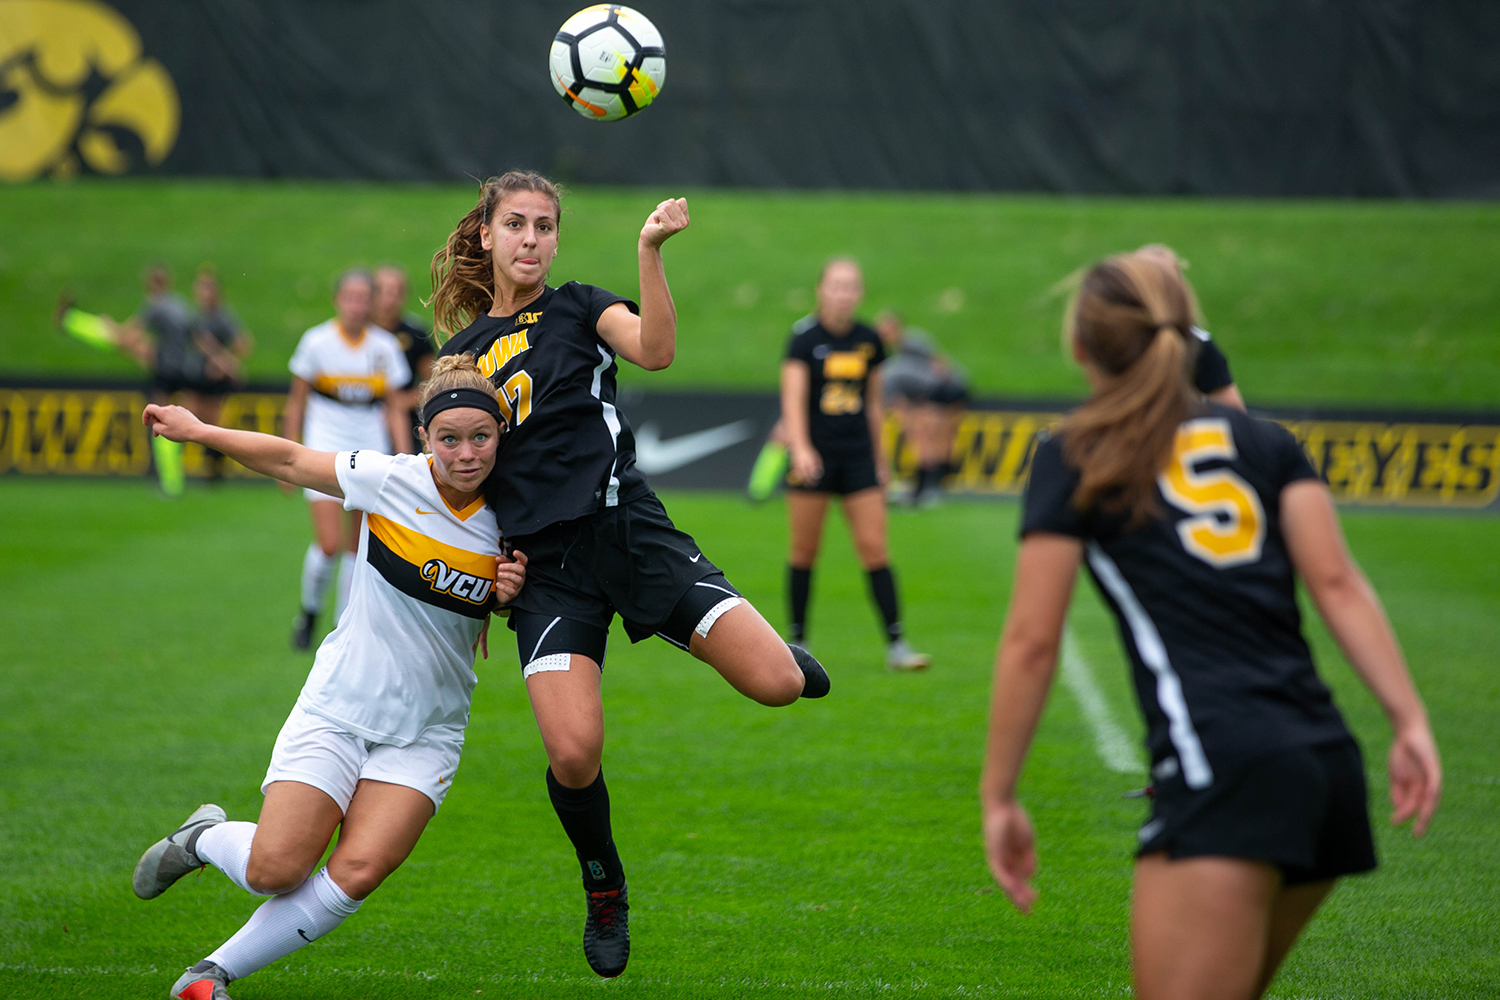 Defender Hannah Drkulec fights for the ball during a game against Virginia Commonwealth University on Sept. 2, 2018. The Hawkeyes won the match 2-0.